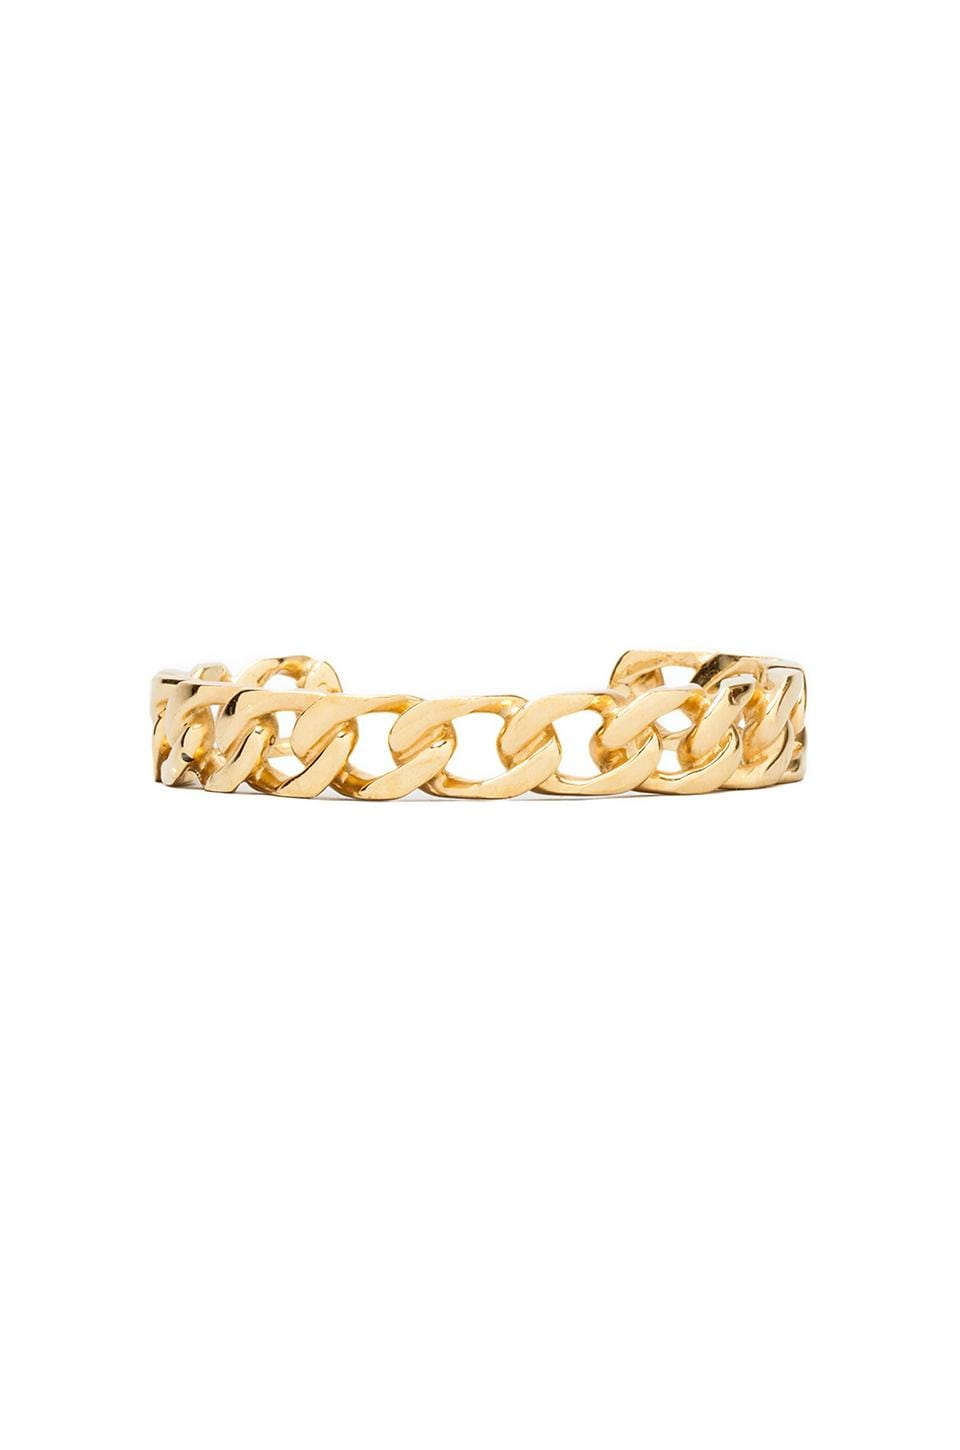 joolz by Martha Calvo Large Curb Link Bangle in Gold